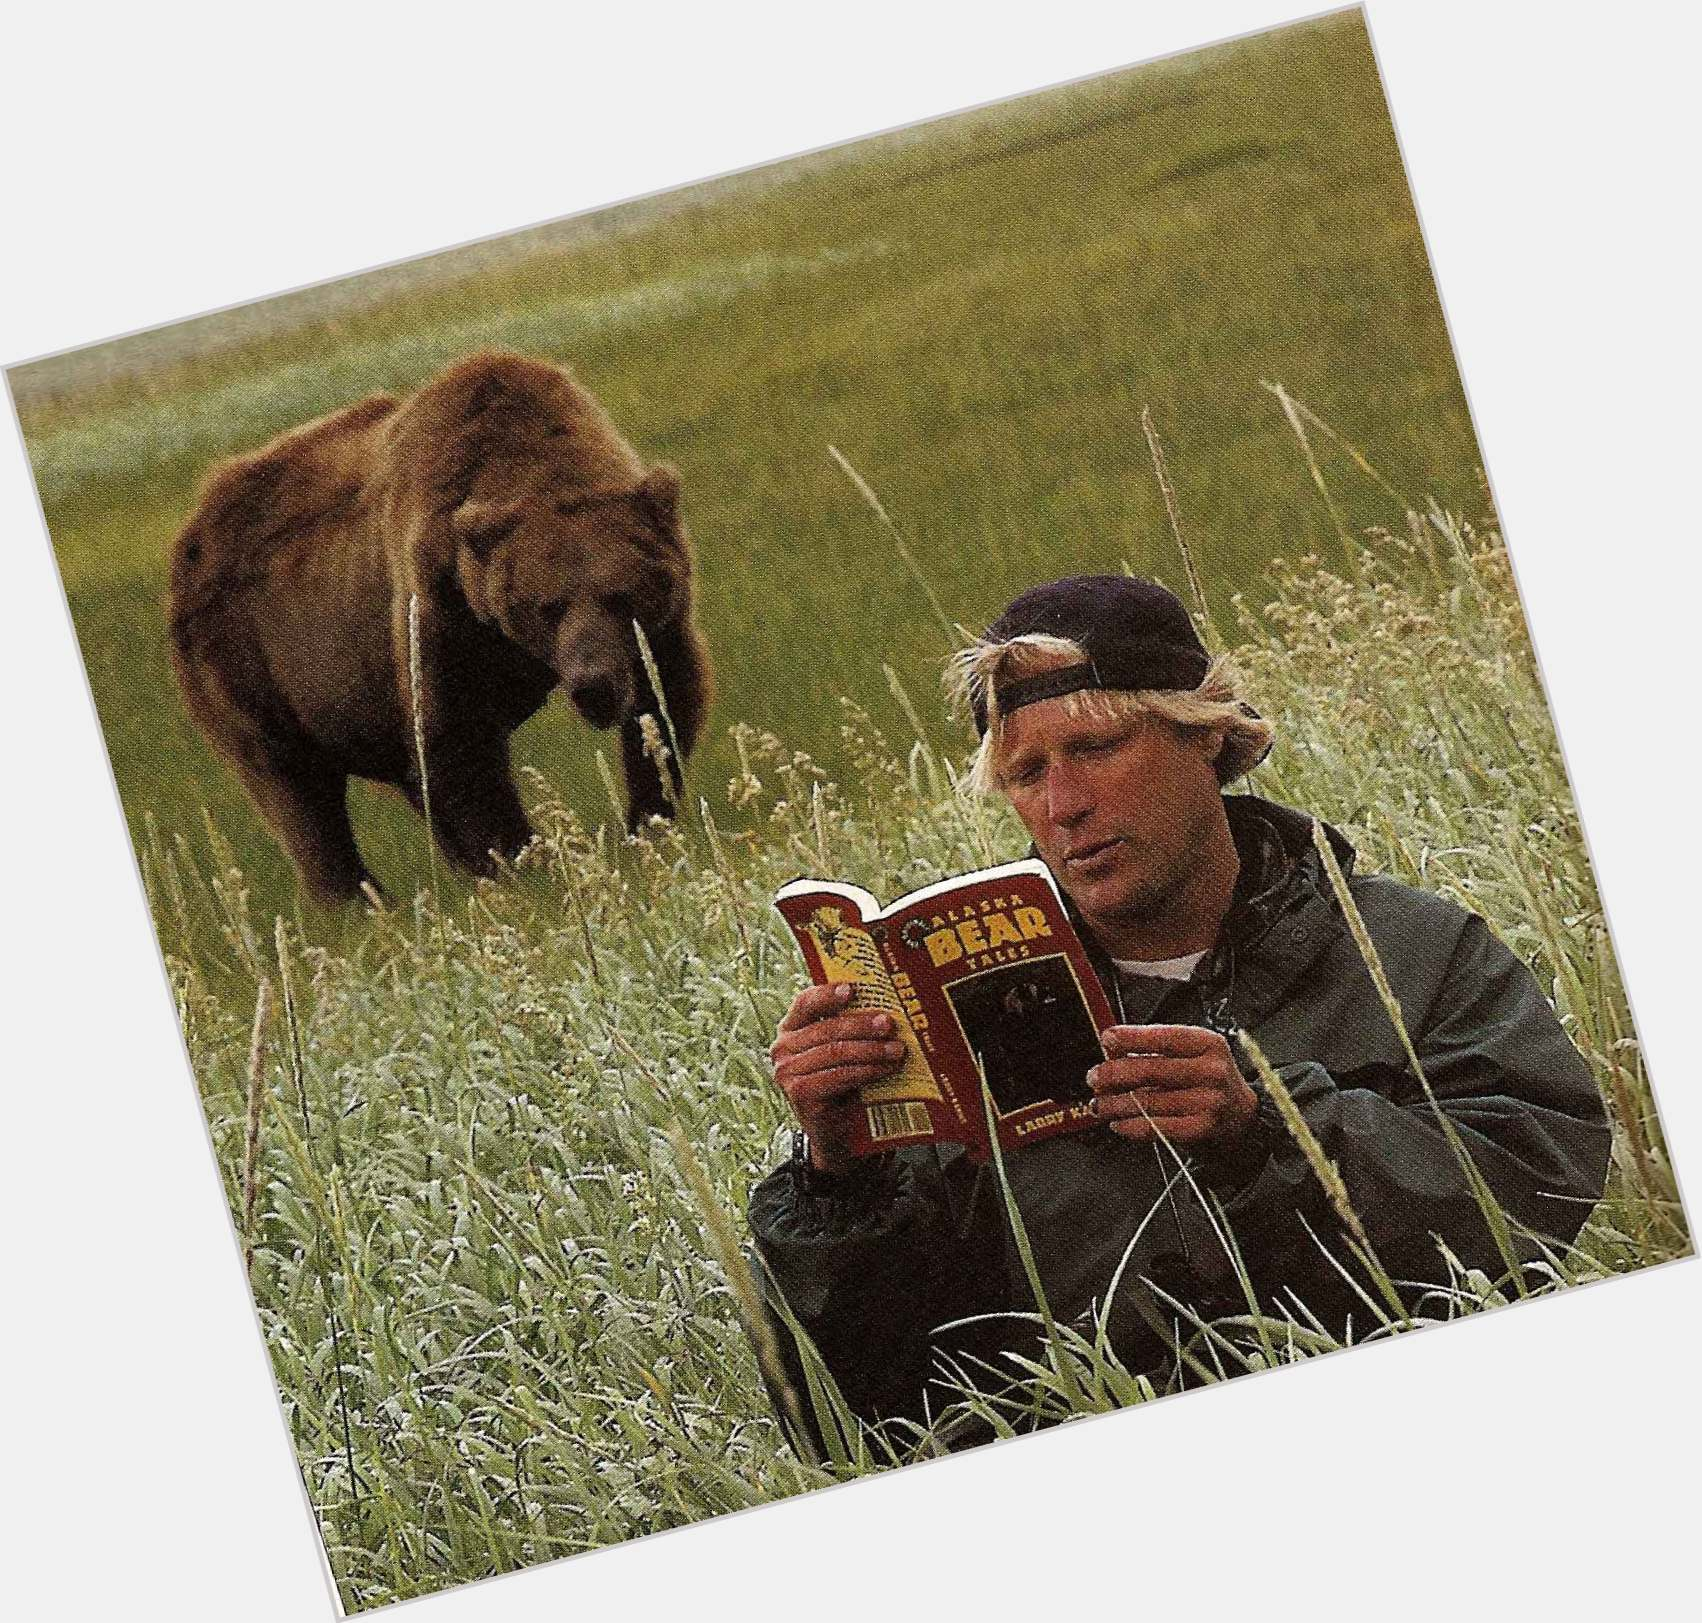 timothy treadwell Audio of attack of timothy treadwell and friend amie huguenard on 6 oct 2003 warning extremely graphic and disturbing audio.